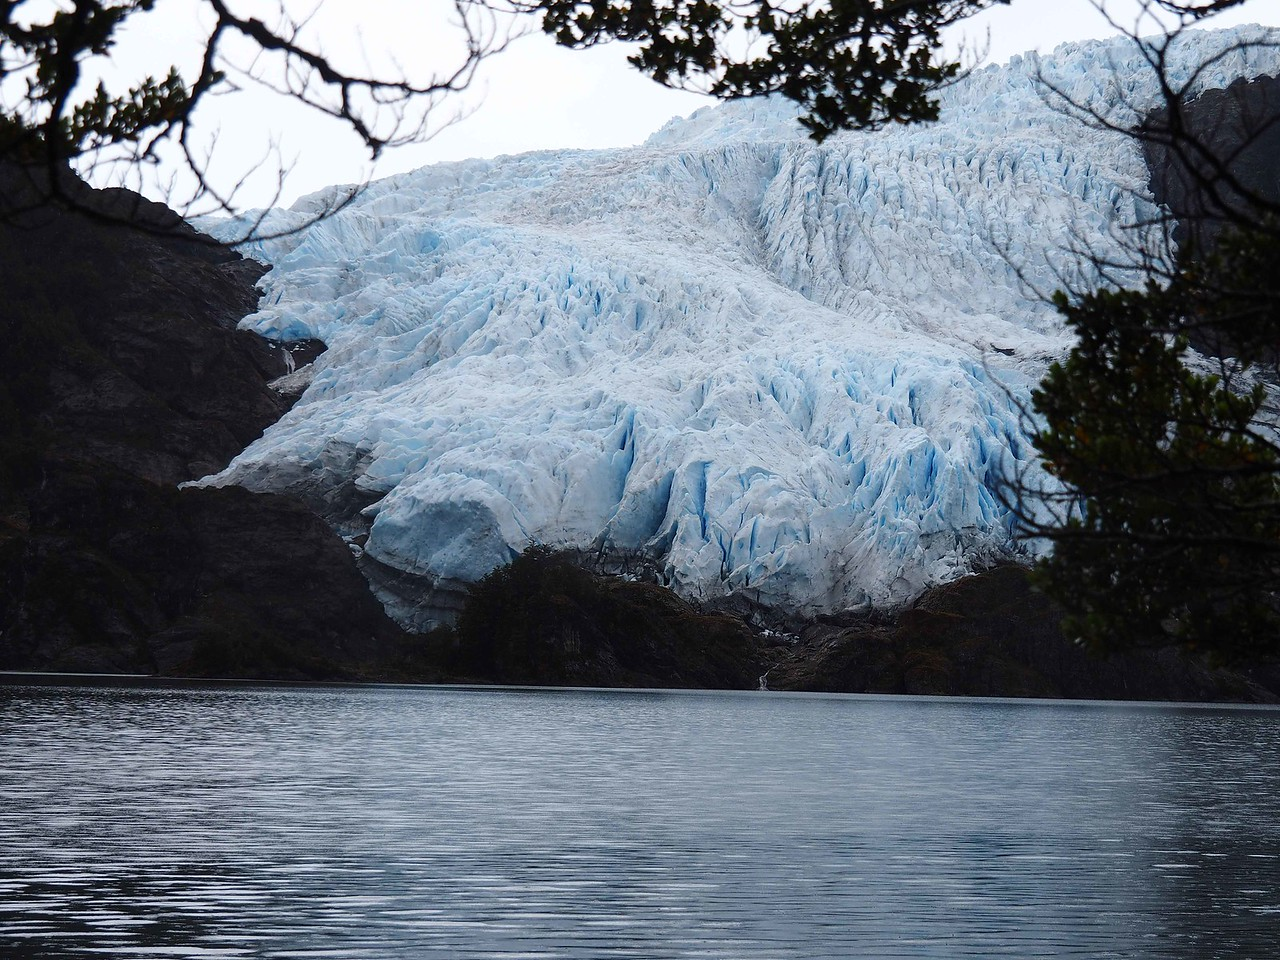 Another view of the glacier